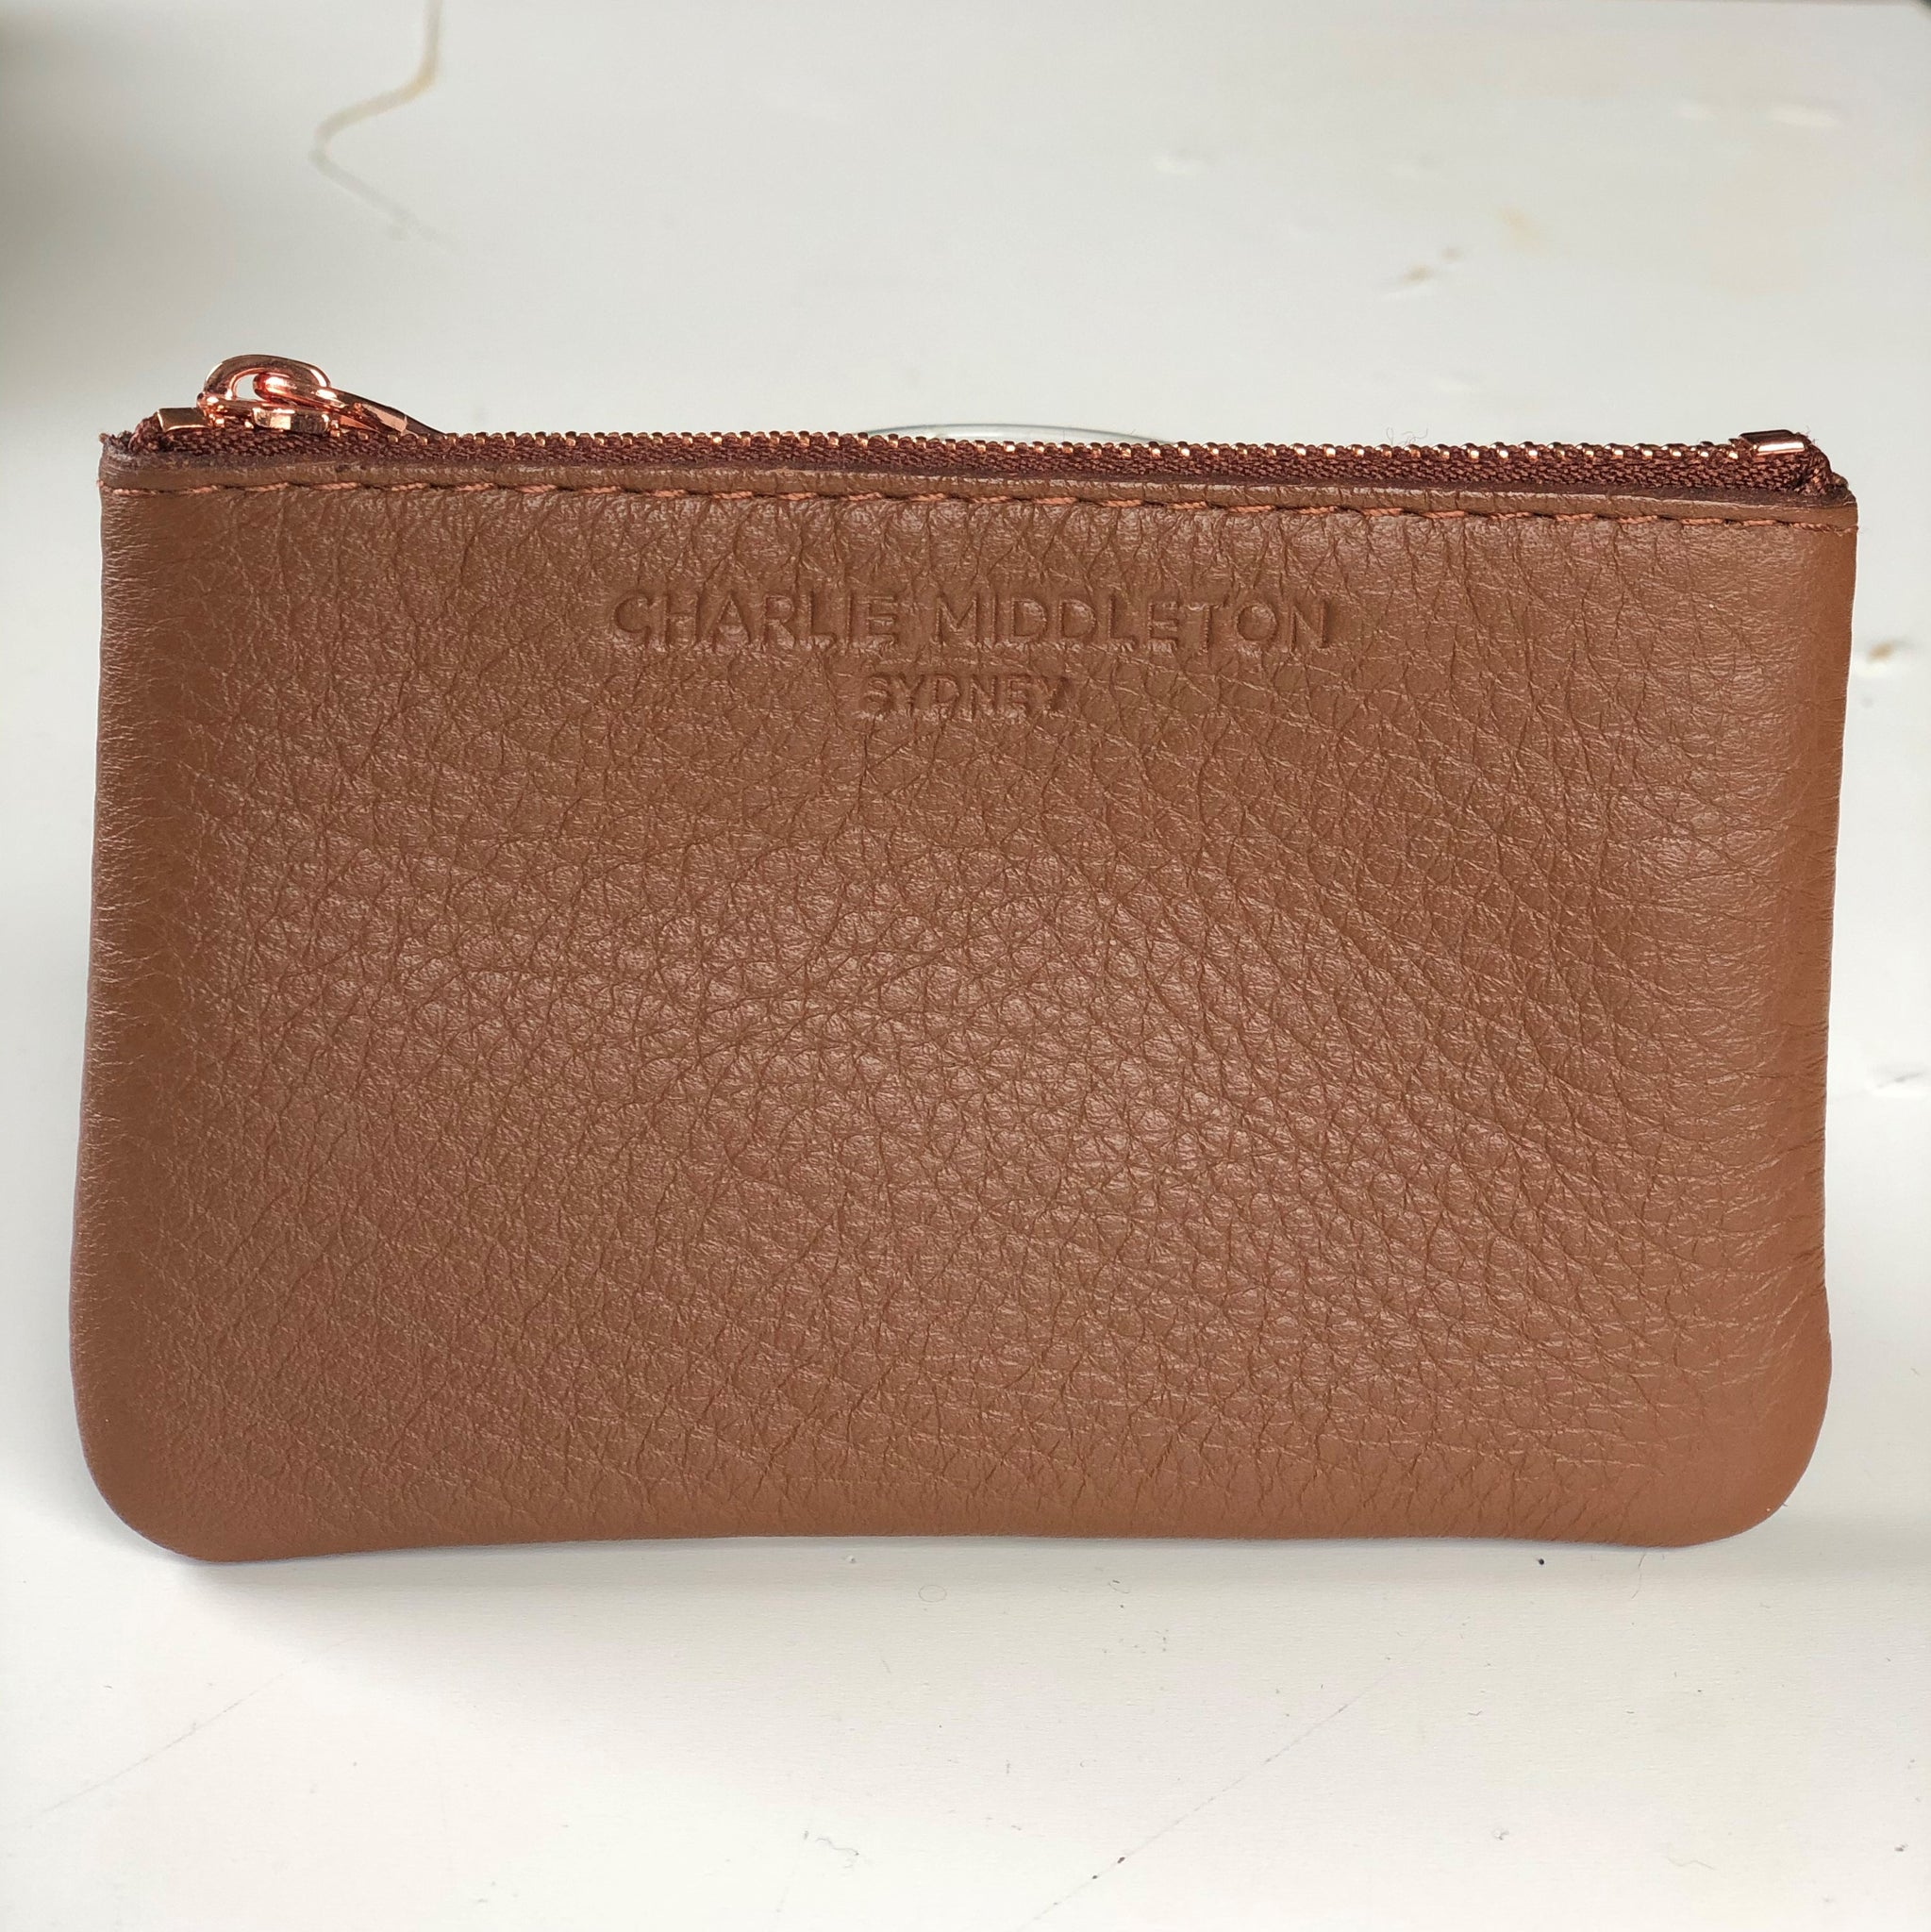 CHARLIE MIDDLETON - TAN NAPPA COIN PURSE - ROSE GOLD HW